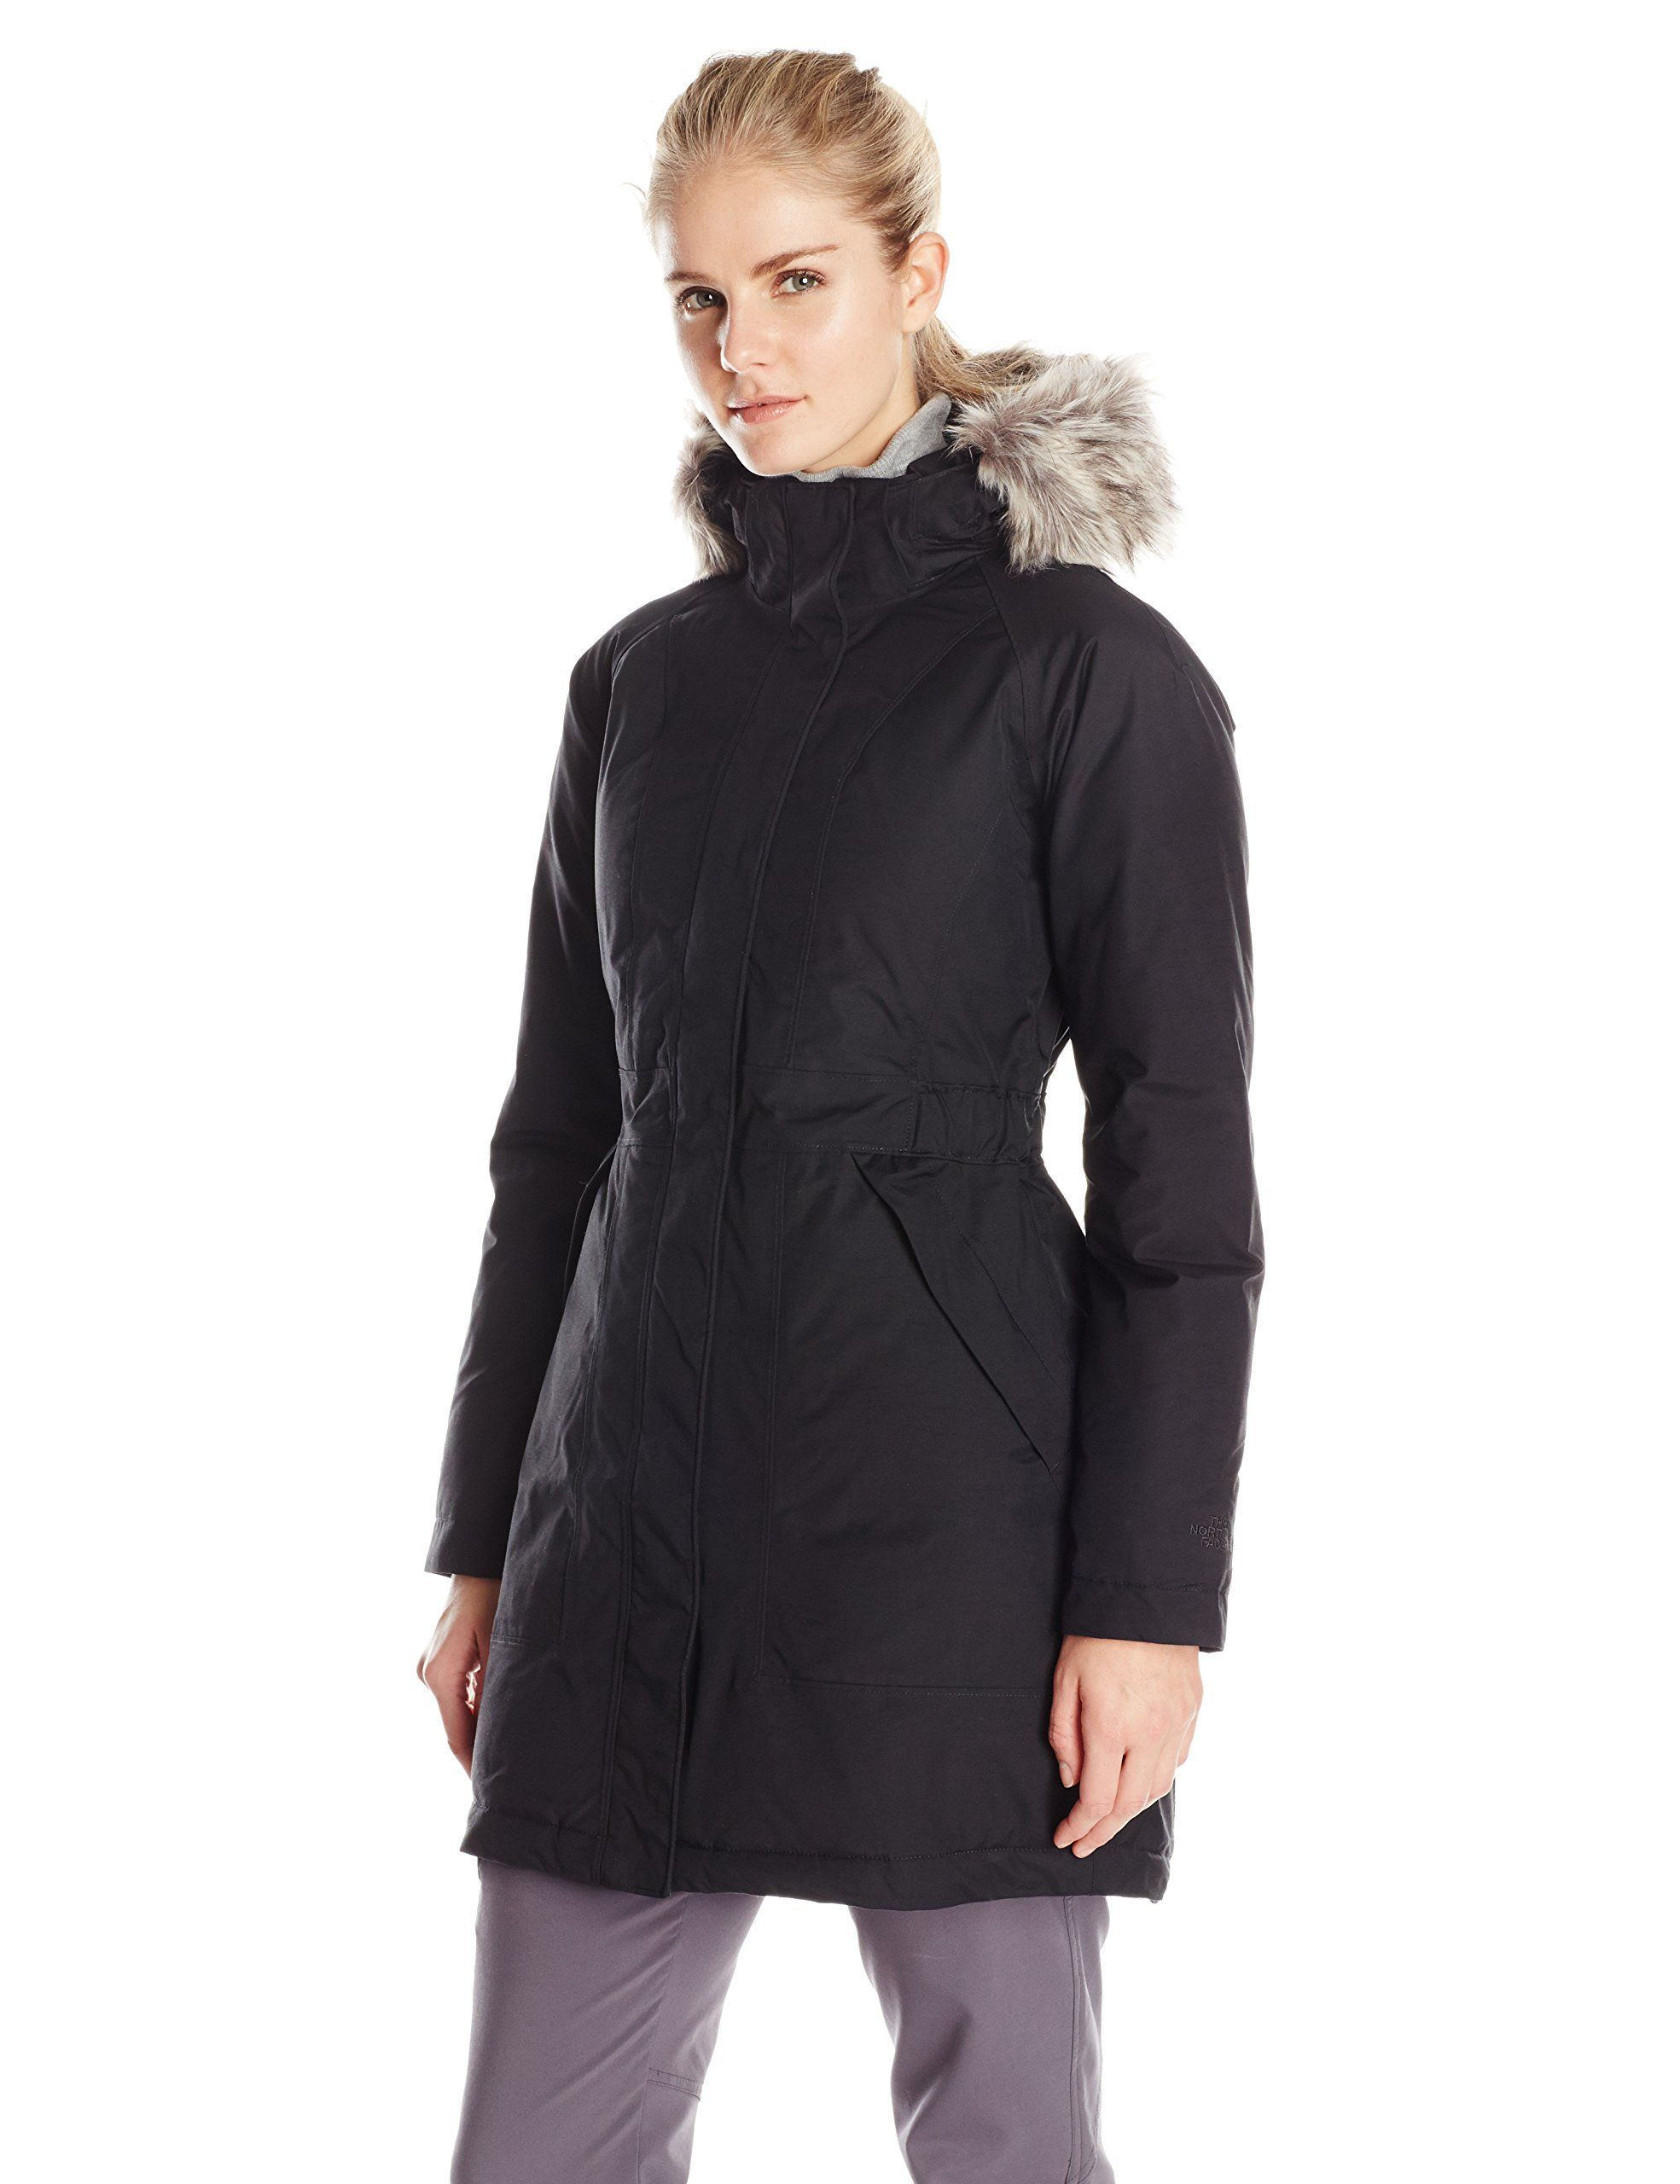 52ff7b09 Buy The North Face Women's Arctic Down Parka New 2014 CC139ZG_XS: Down  Jackets & Parkas - Amazon.com ✓ FREE DELIVERY possible on eligible purchases